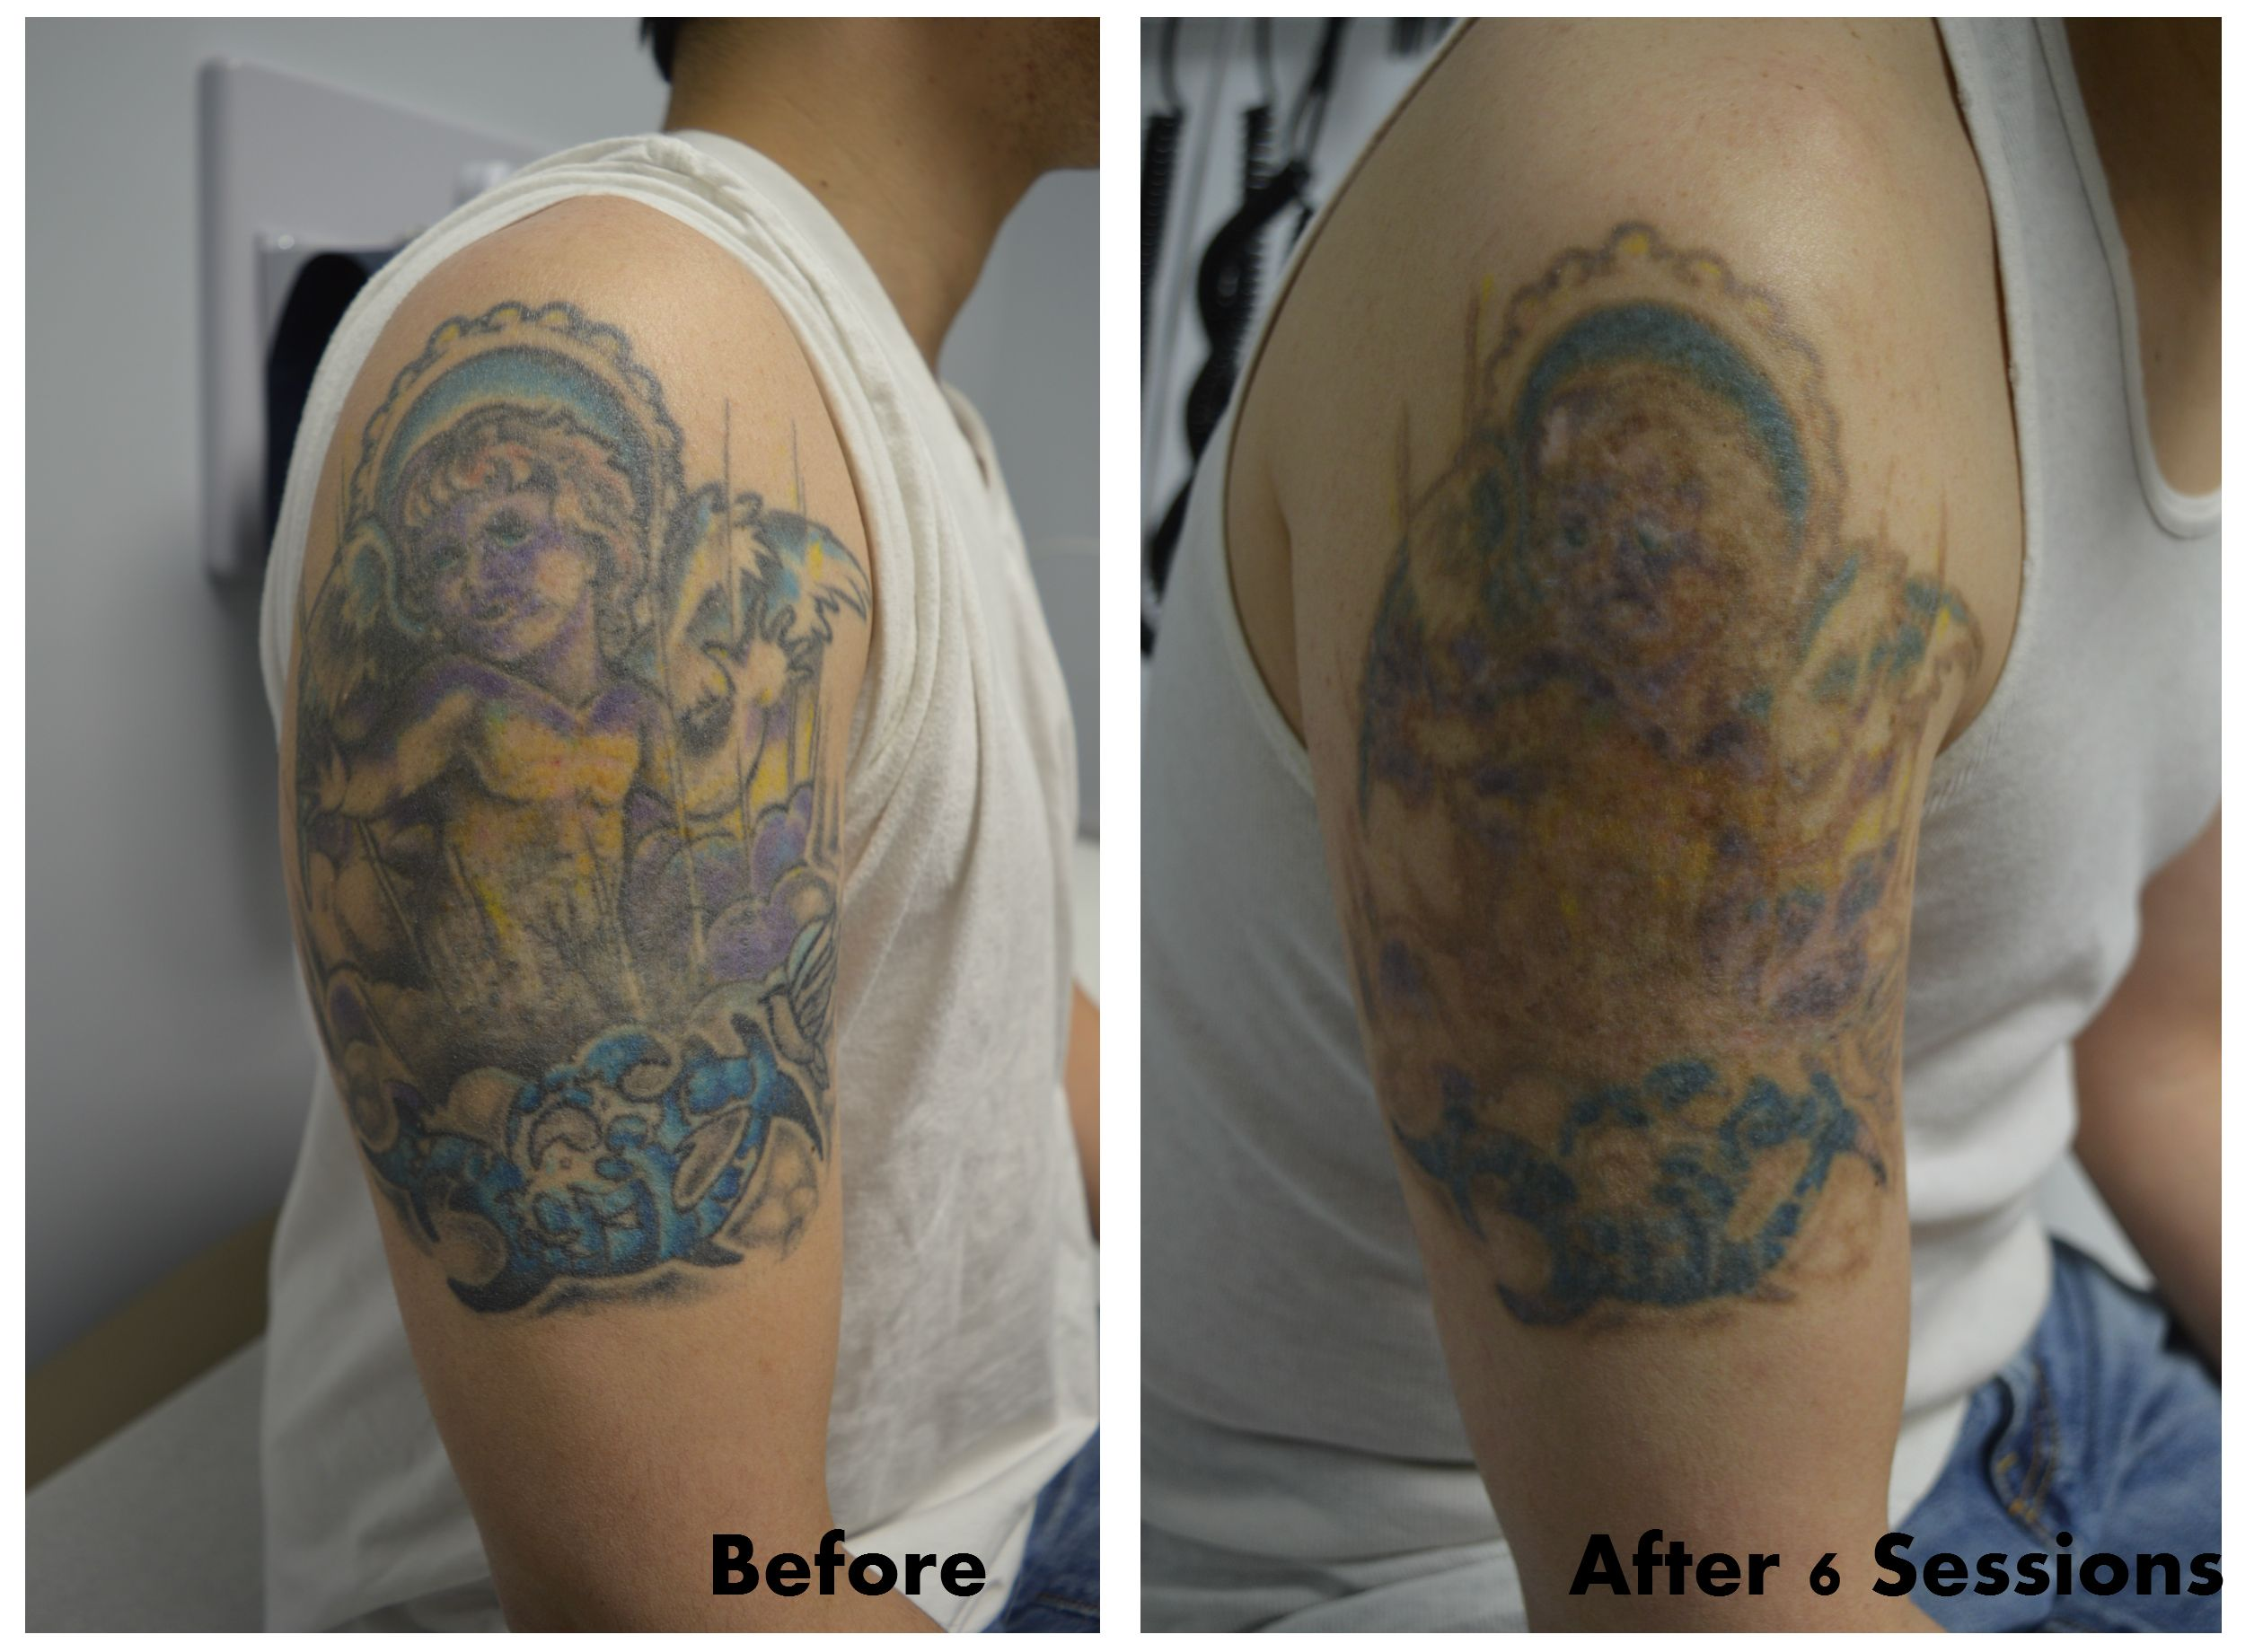 Full color tattoo removal after 6 sessions! Look at that